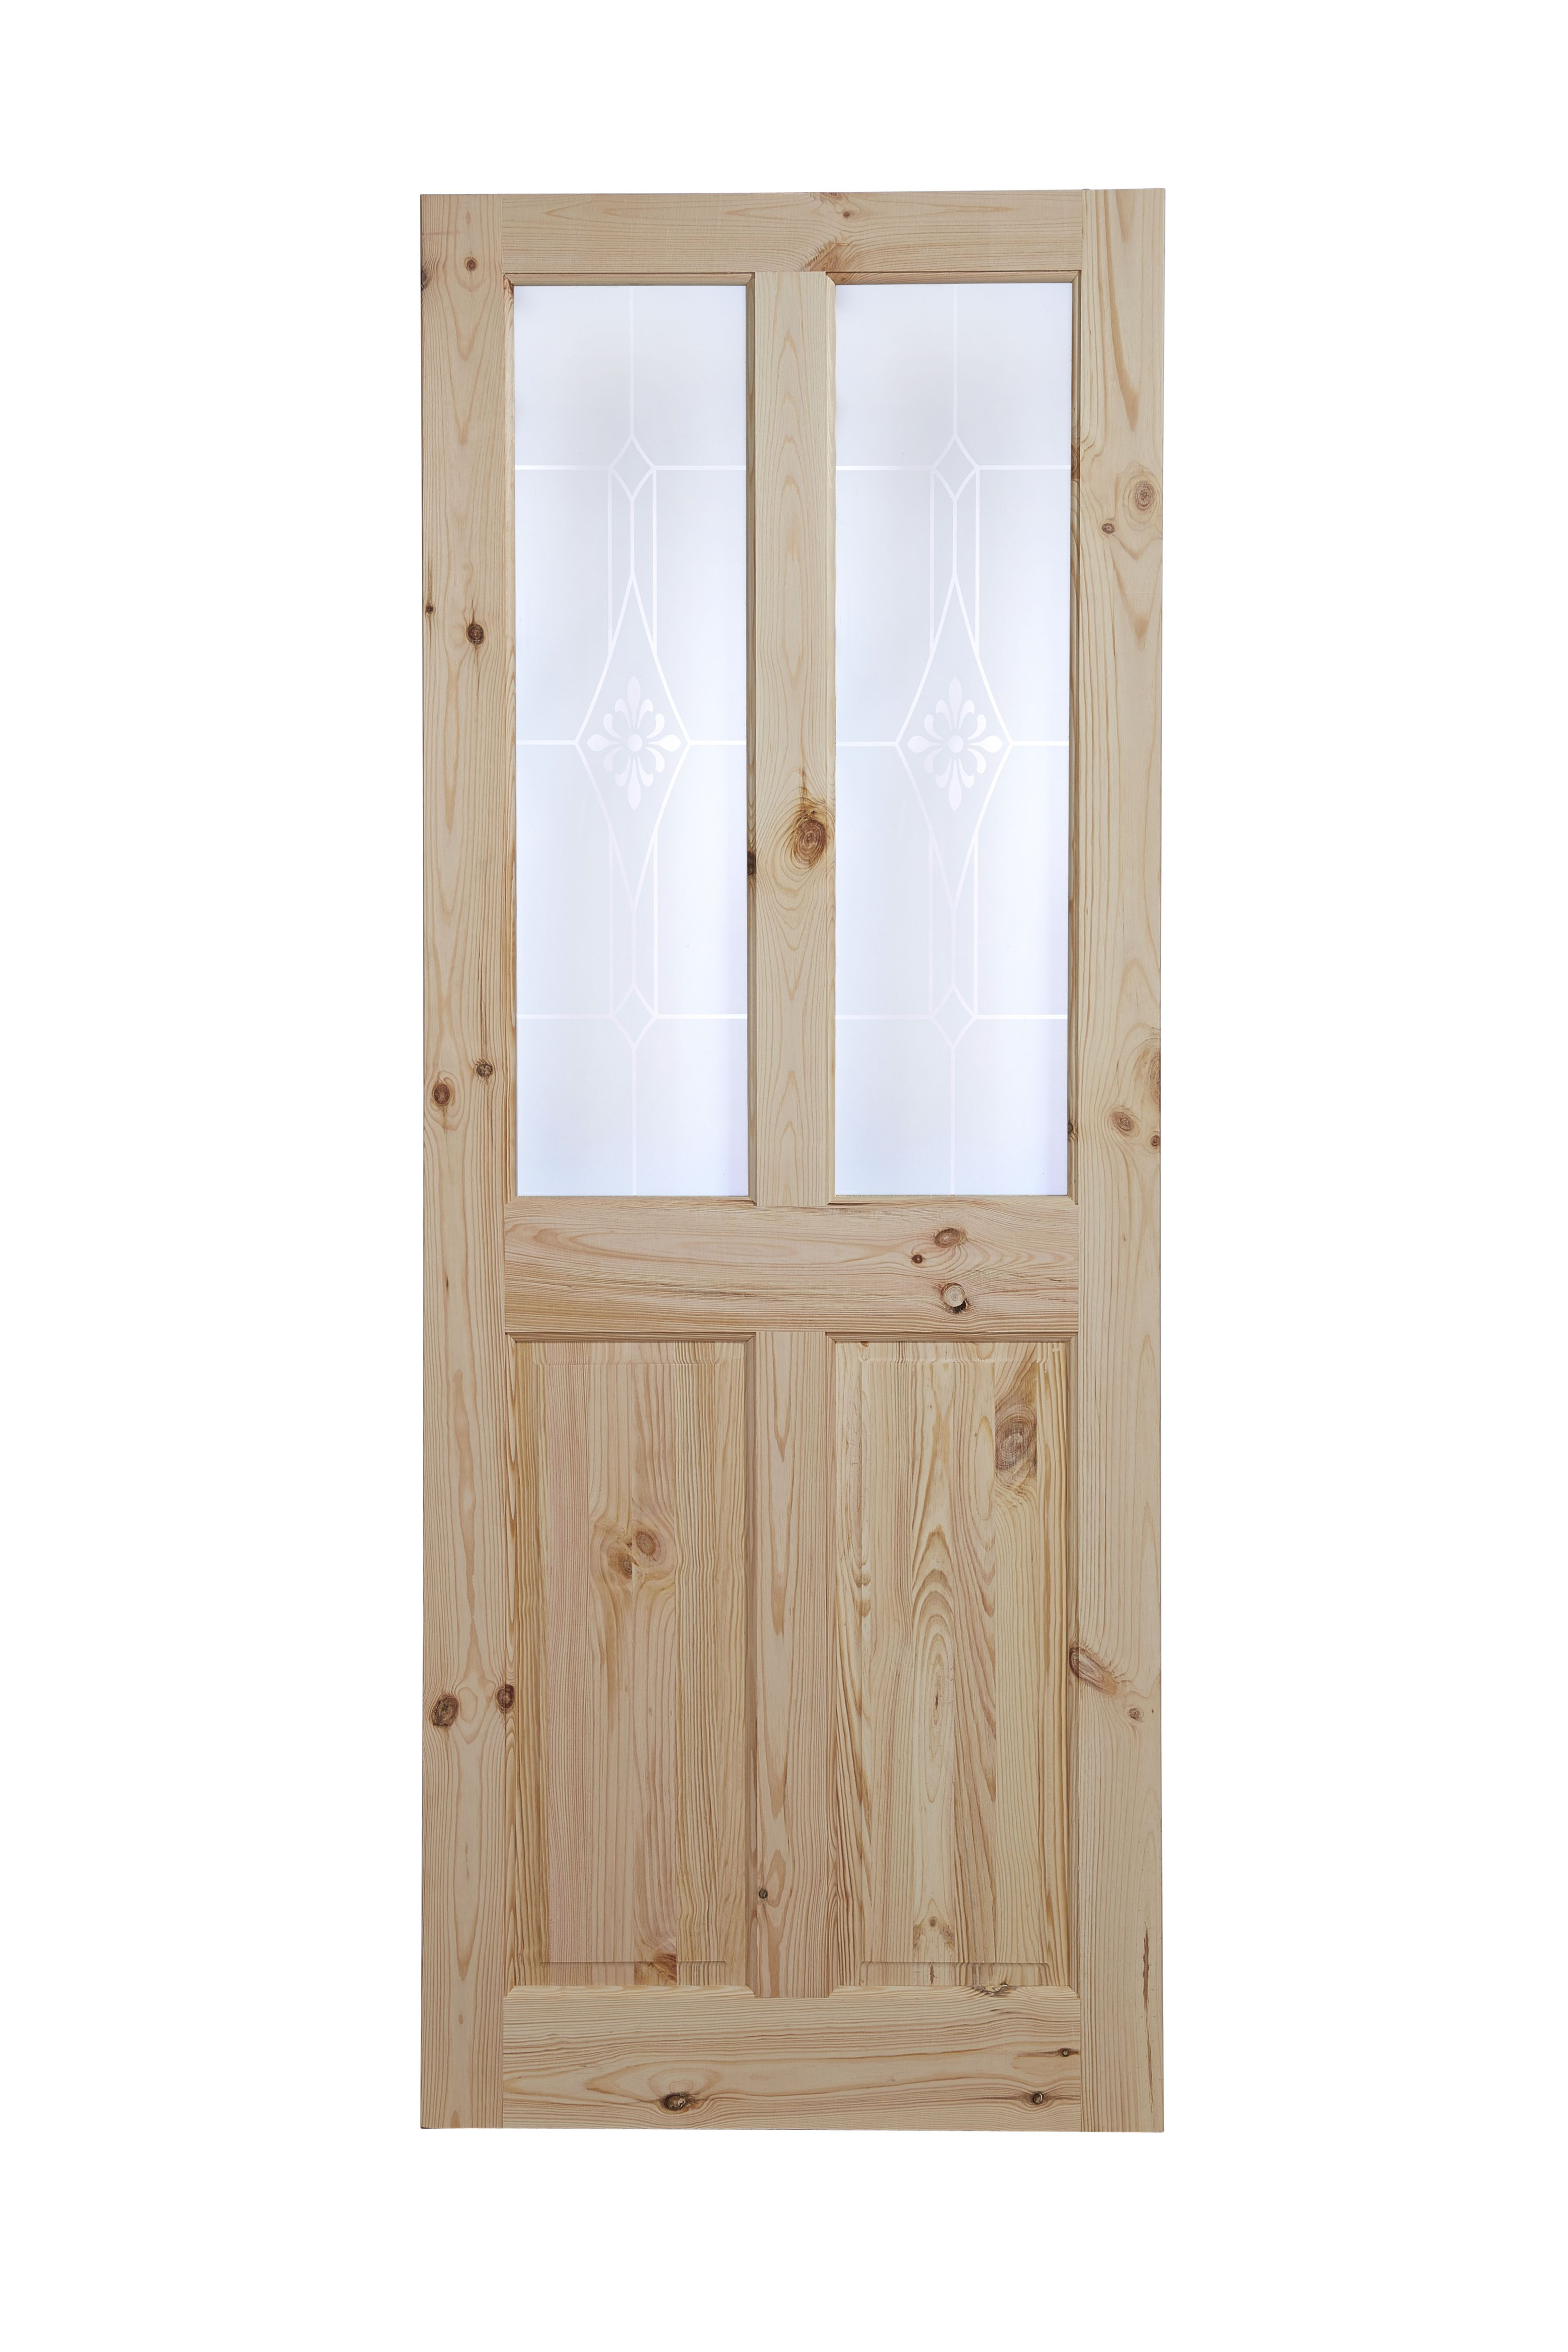 4 Panel Knotty Pine Internal Standard Door H1981mm W838mm